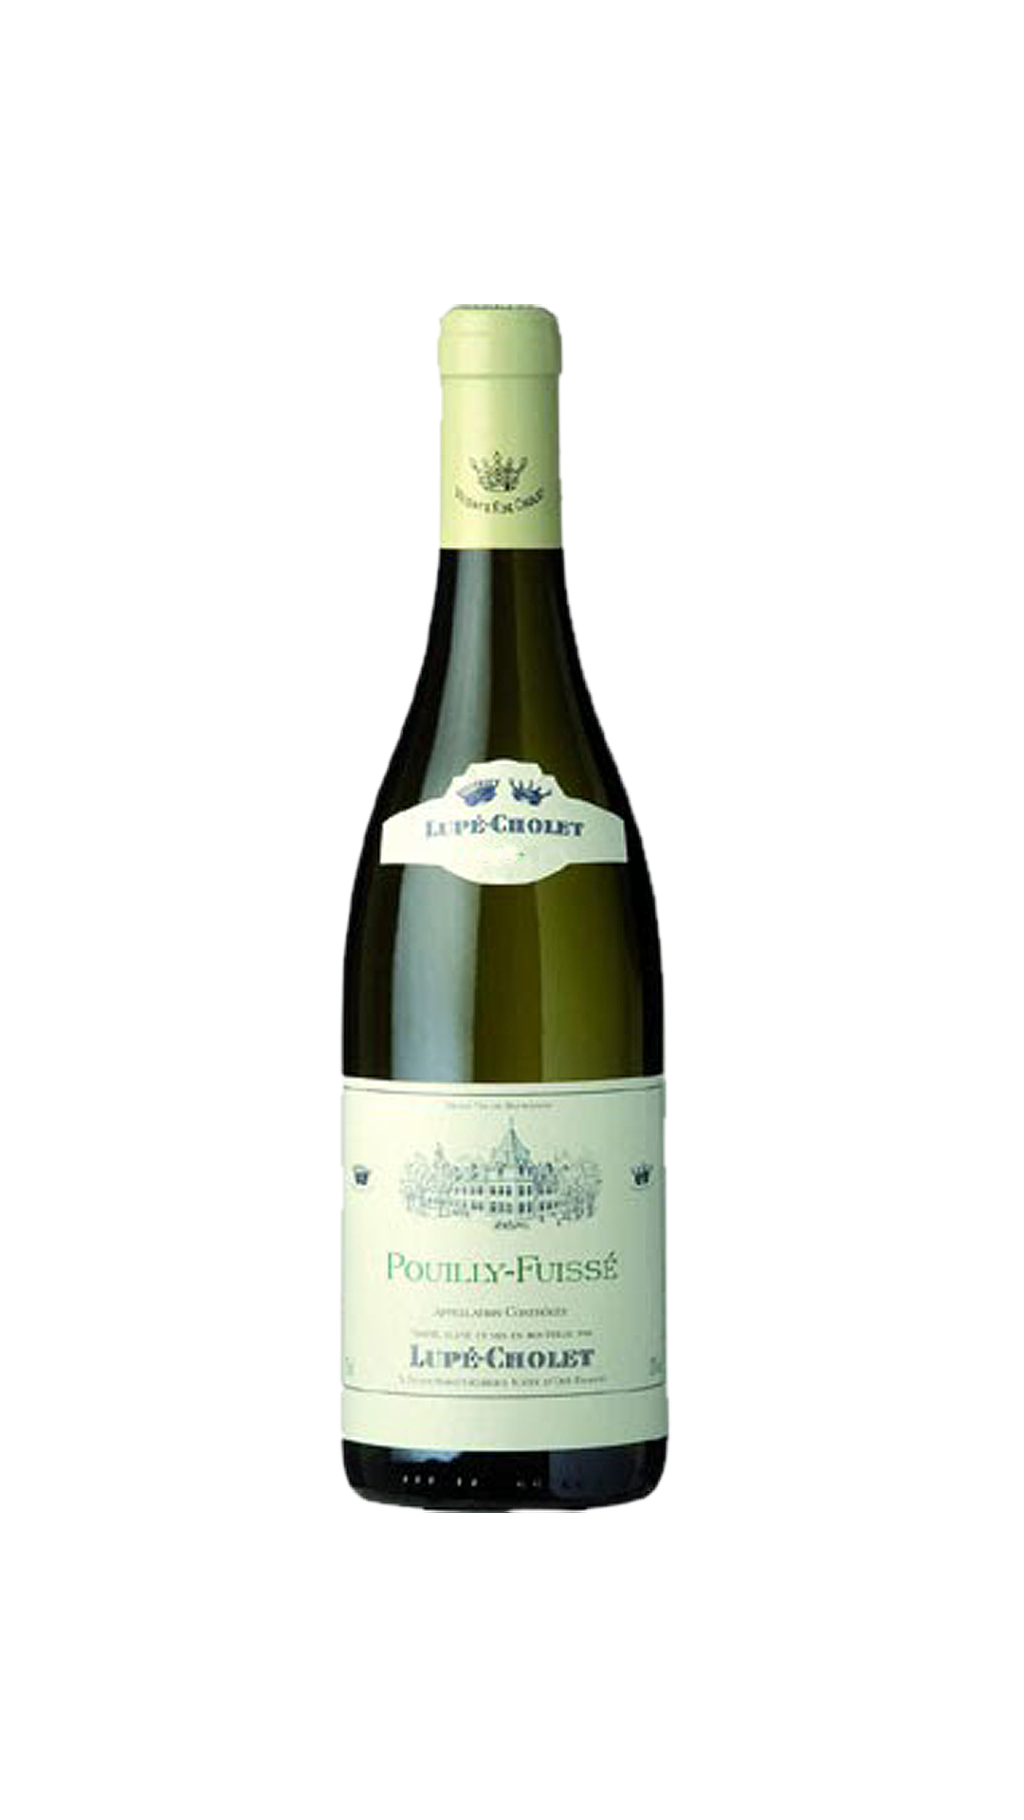 Lupe Cholet Pouilly Fuisse AOC 750ml